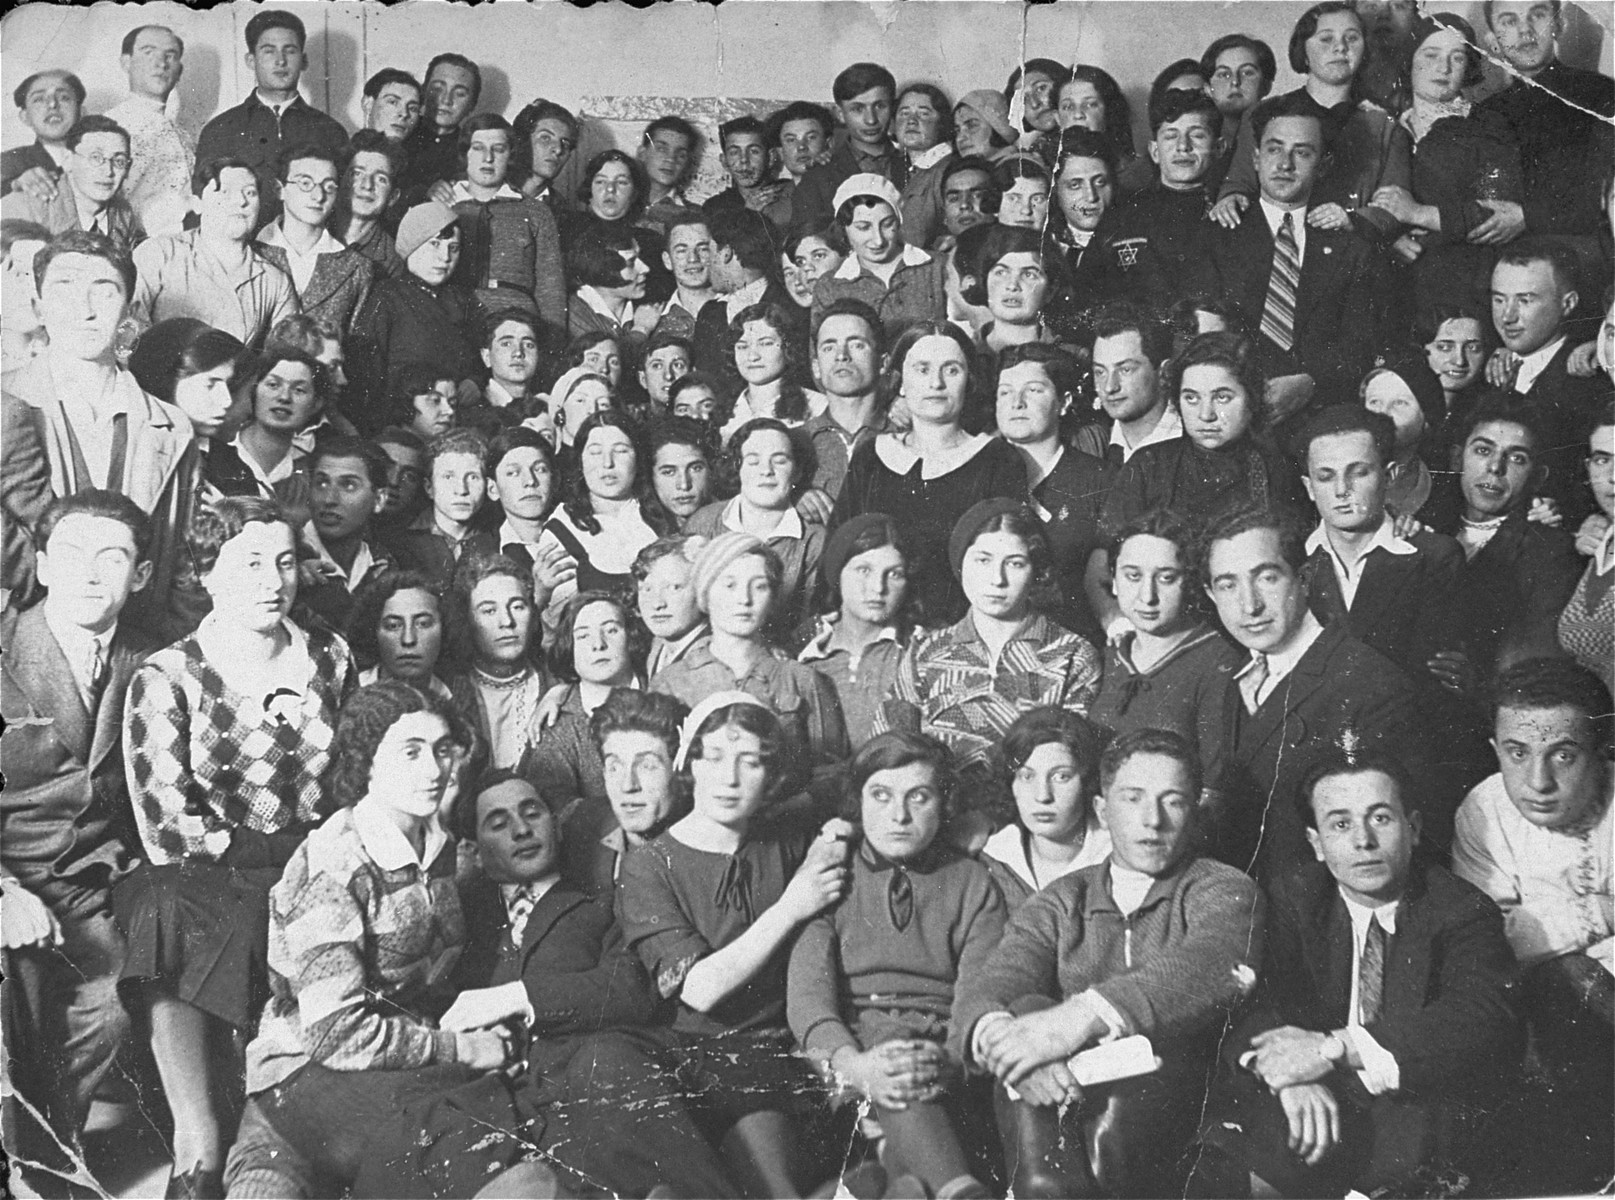 A Zionist group in the Polish community of Swieciany in 1933.